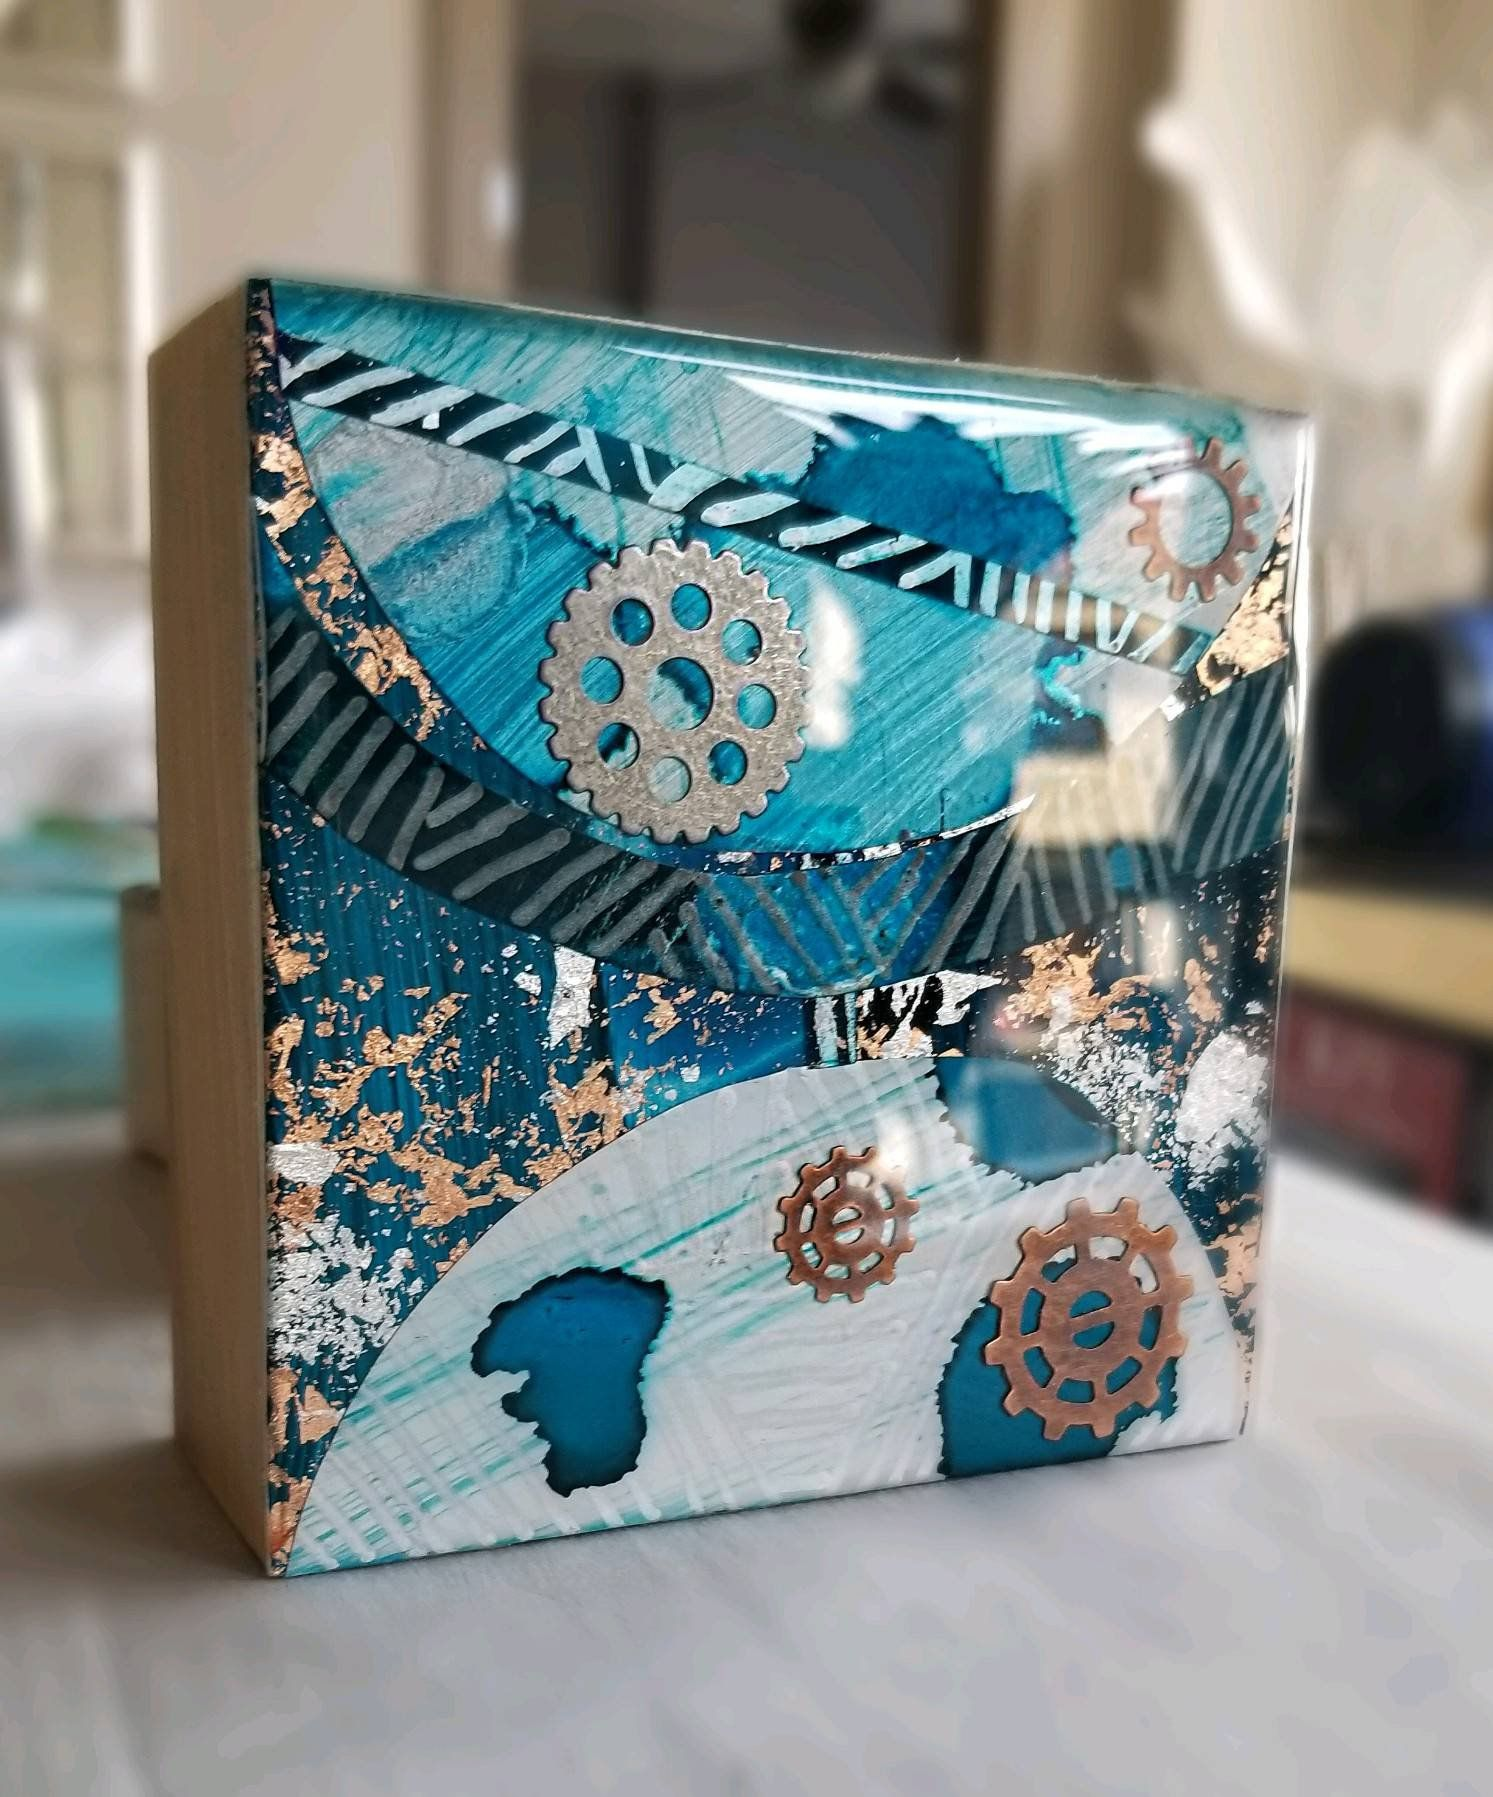 Abstract shelf wall art teal blue silver rose gold